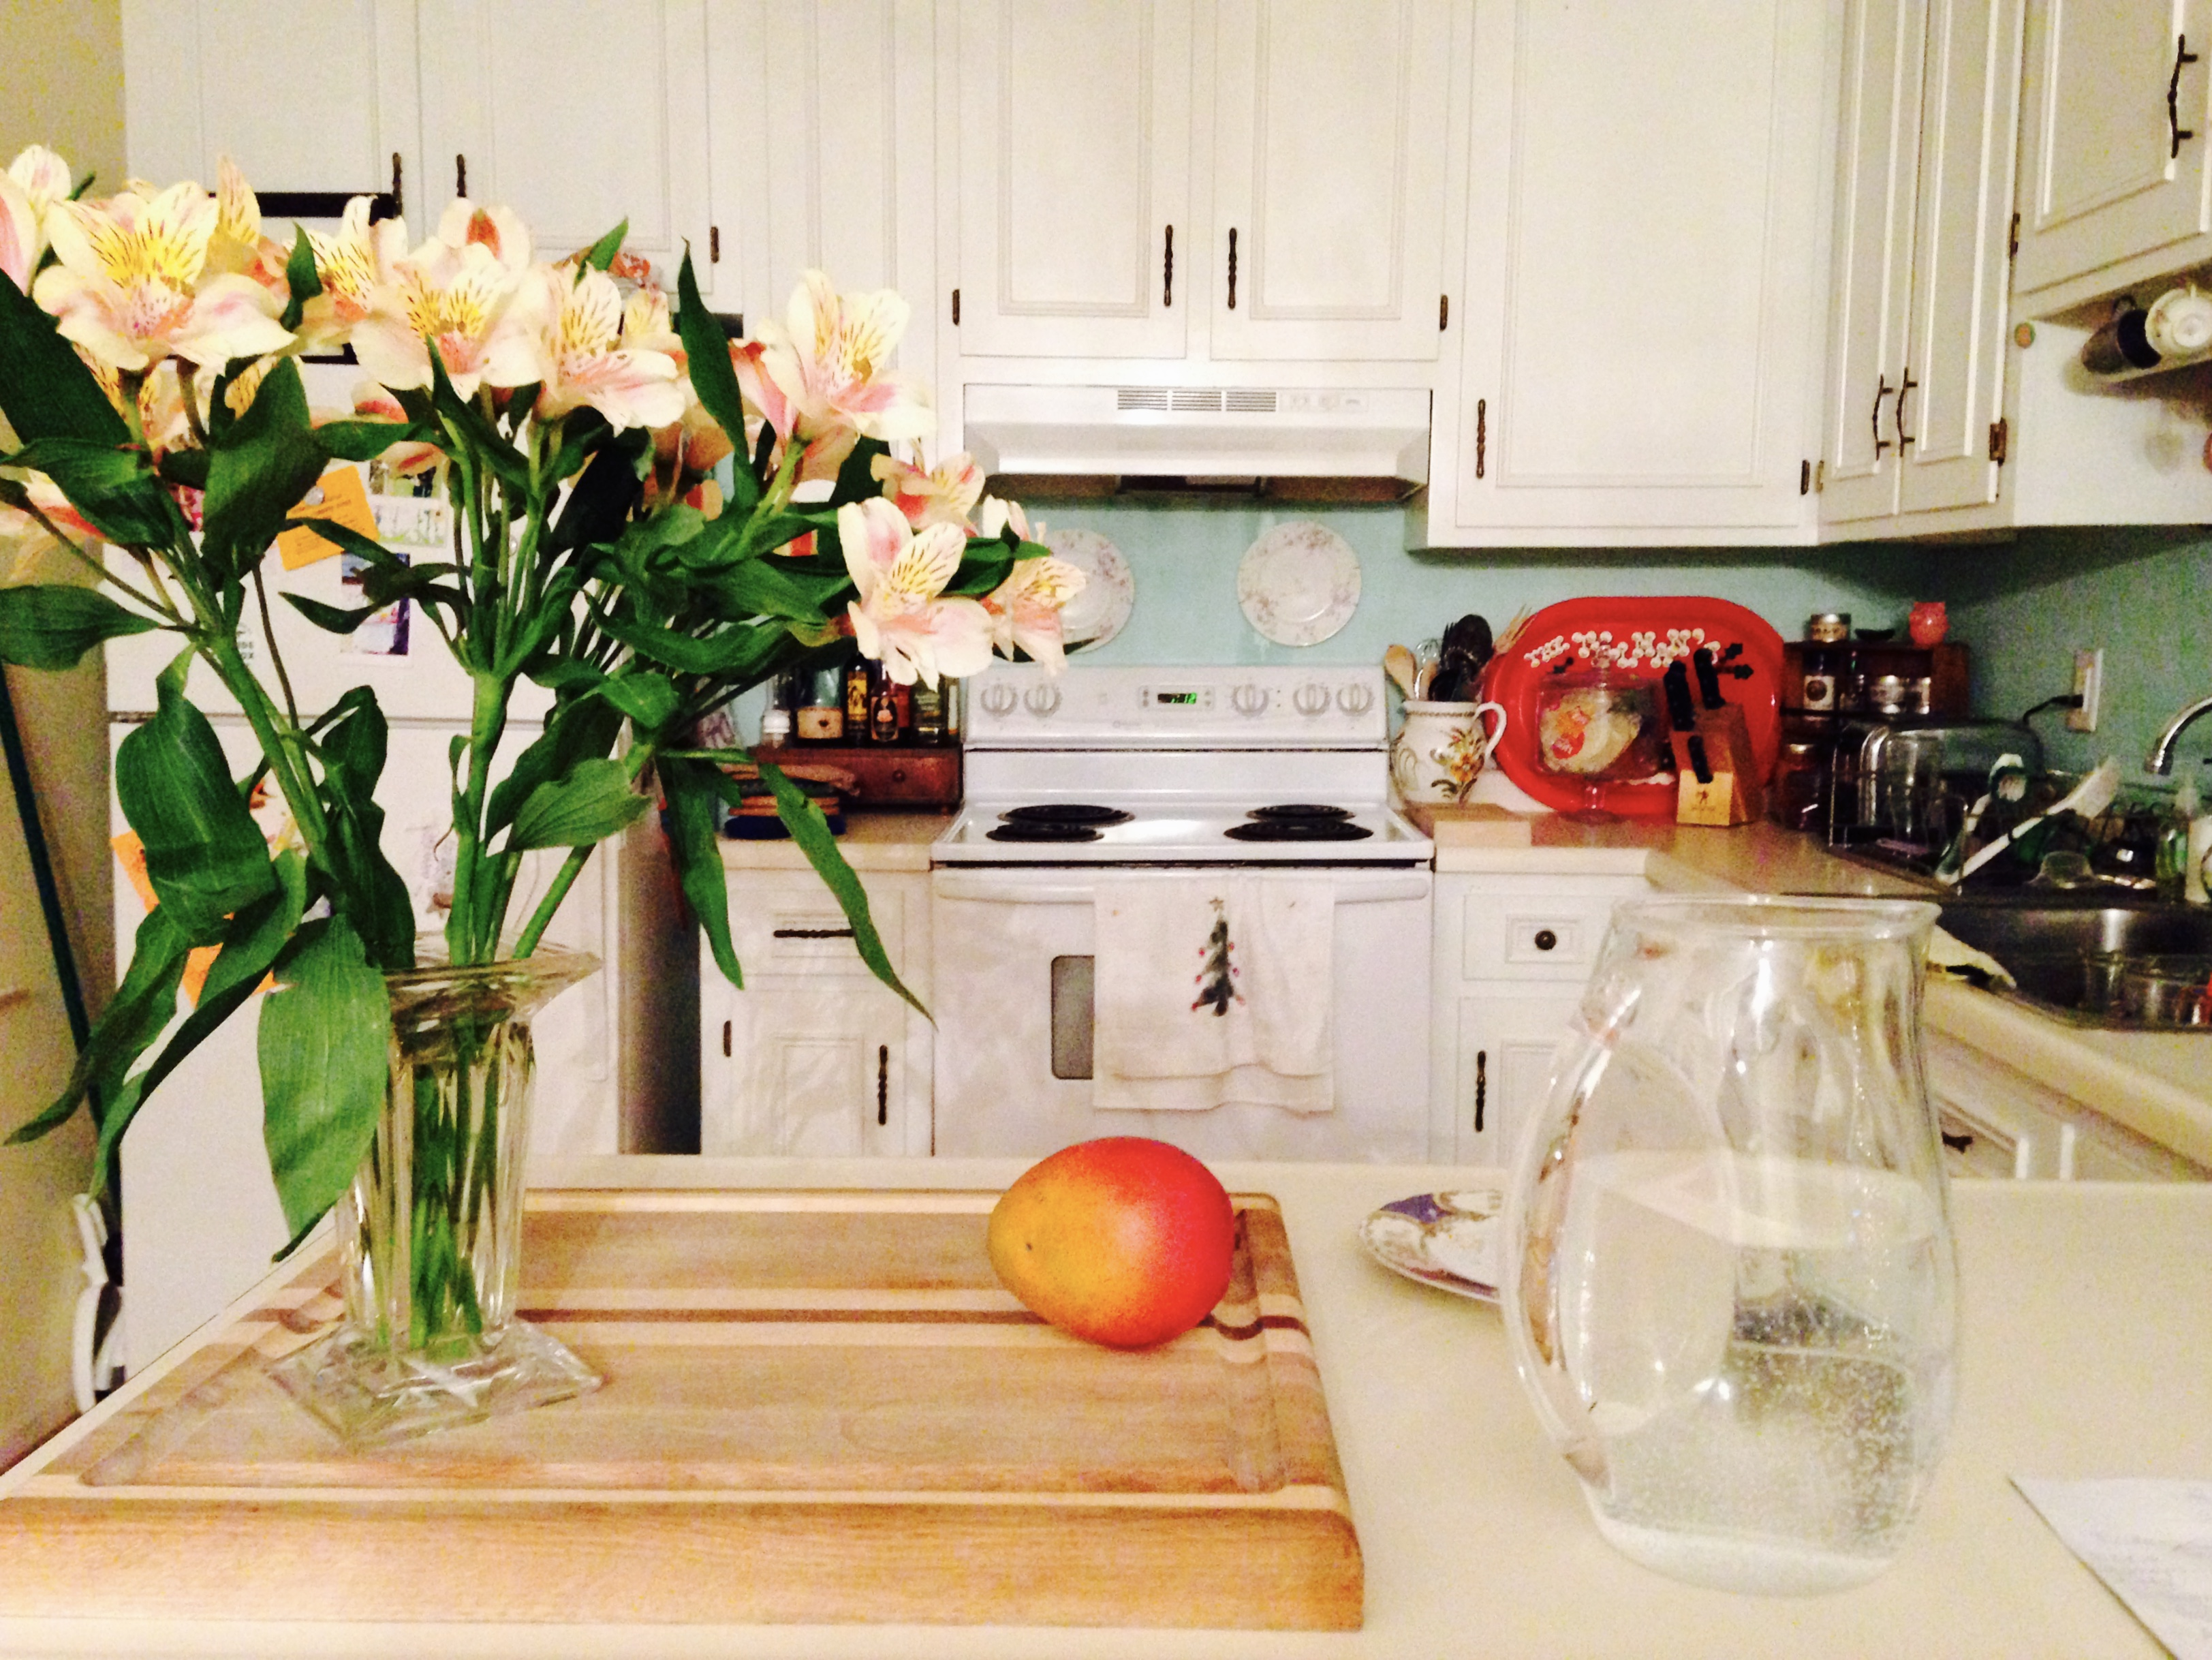 details about kitchen flowers - photo #10